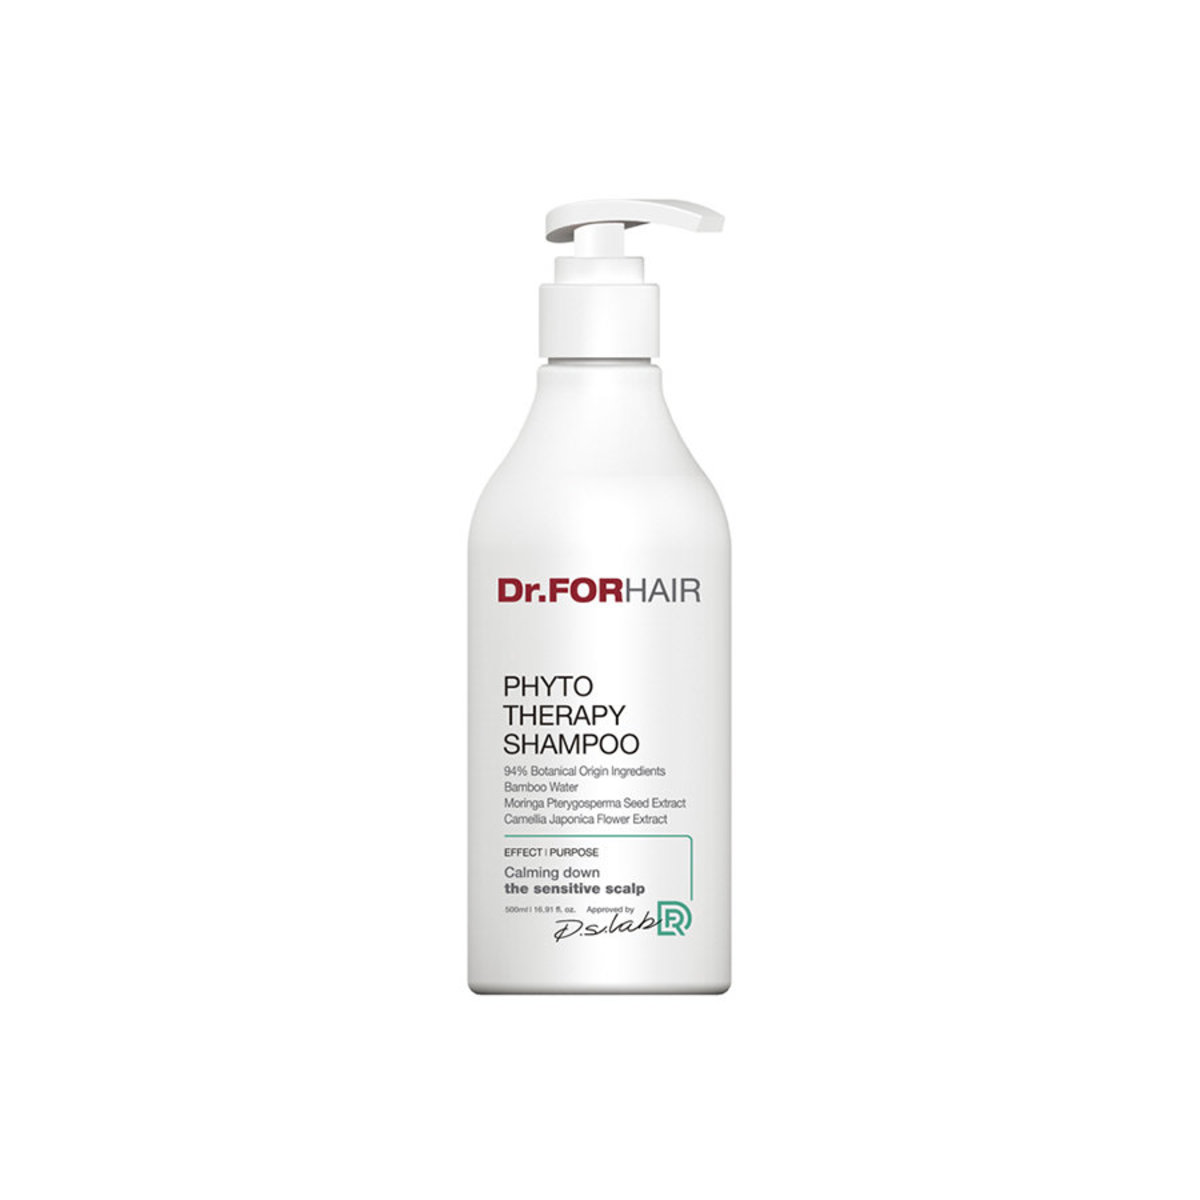 DR.FORHAIR Phyto Therapy Shampoo 300ml (Parallel Import)